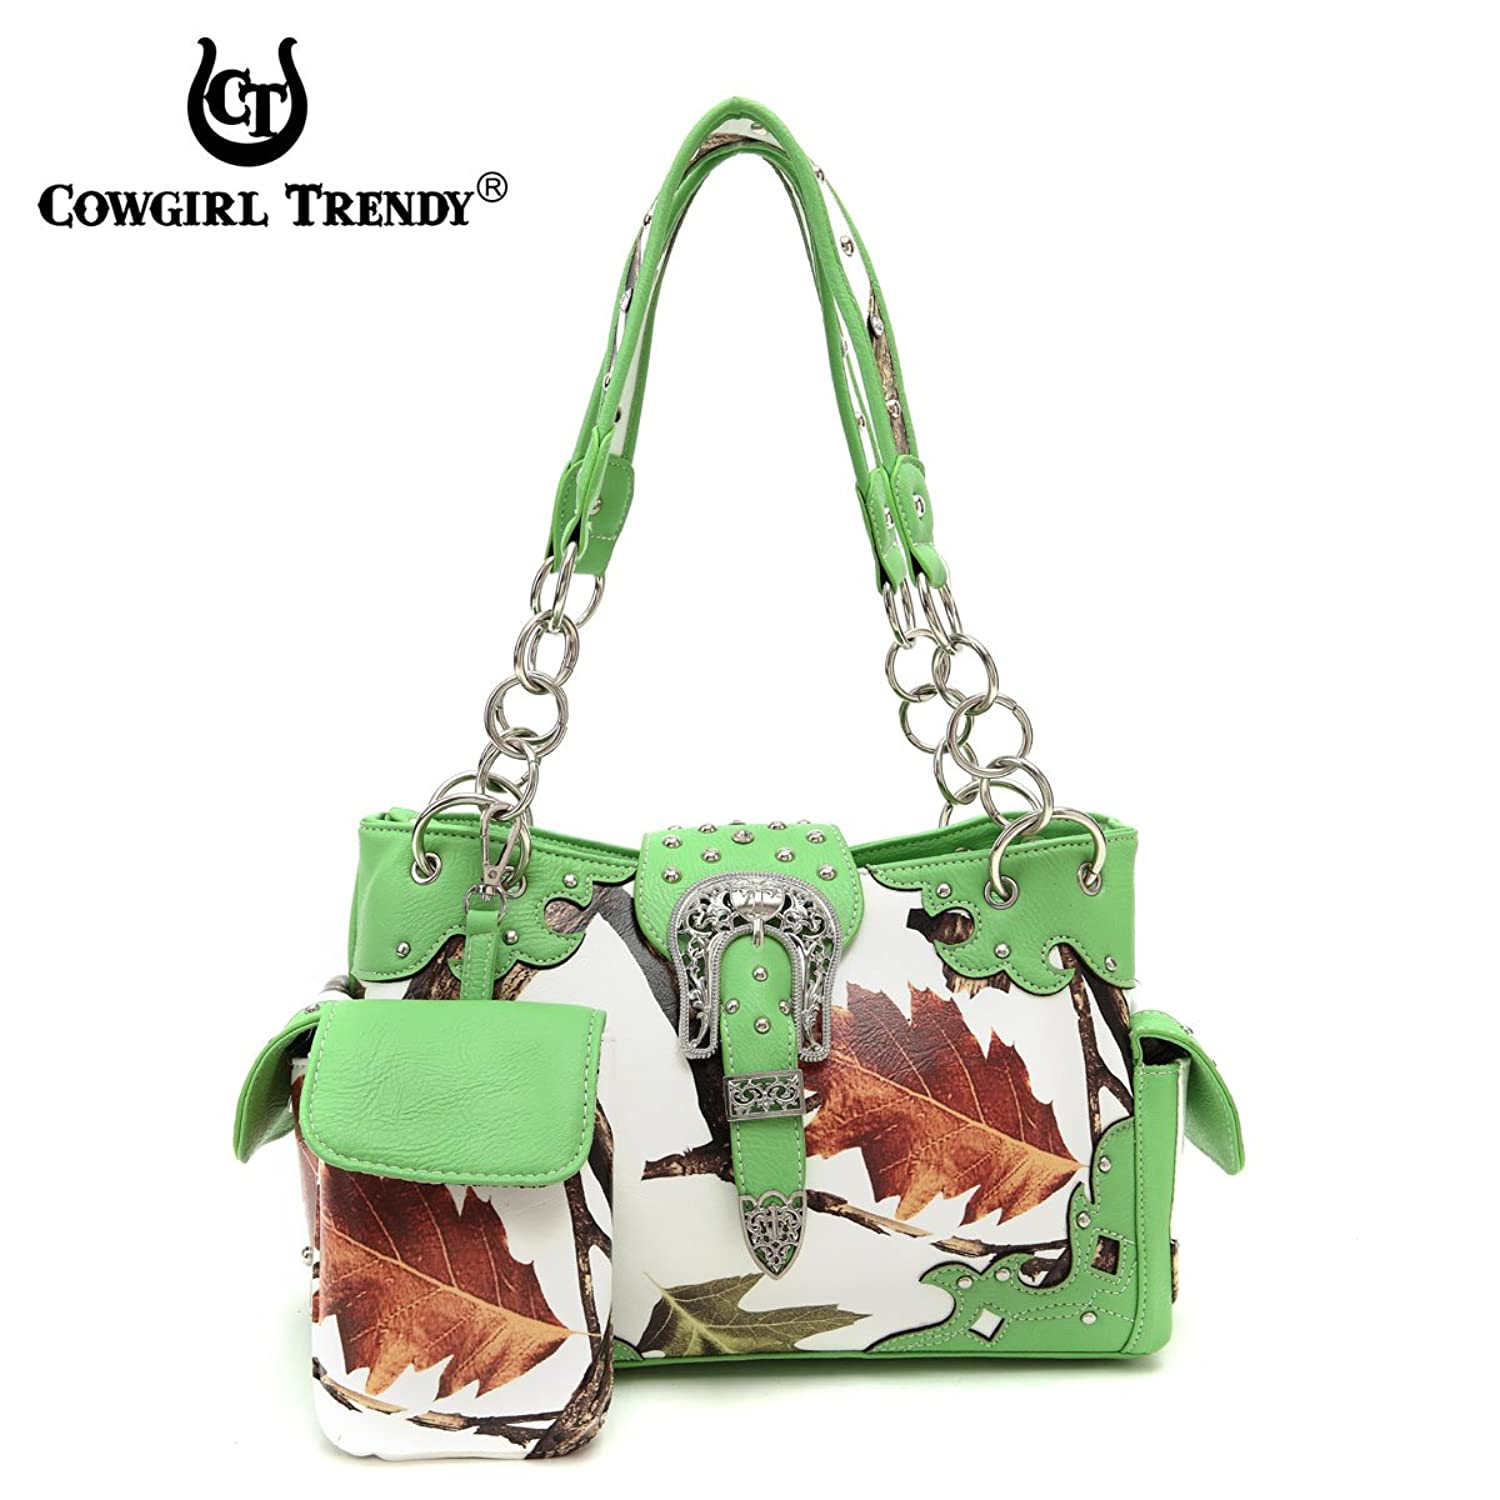 Cowgirl Trendy White Leaves & Trees Satchel with Buckle